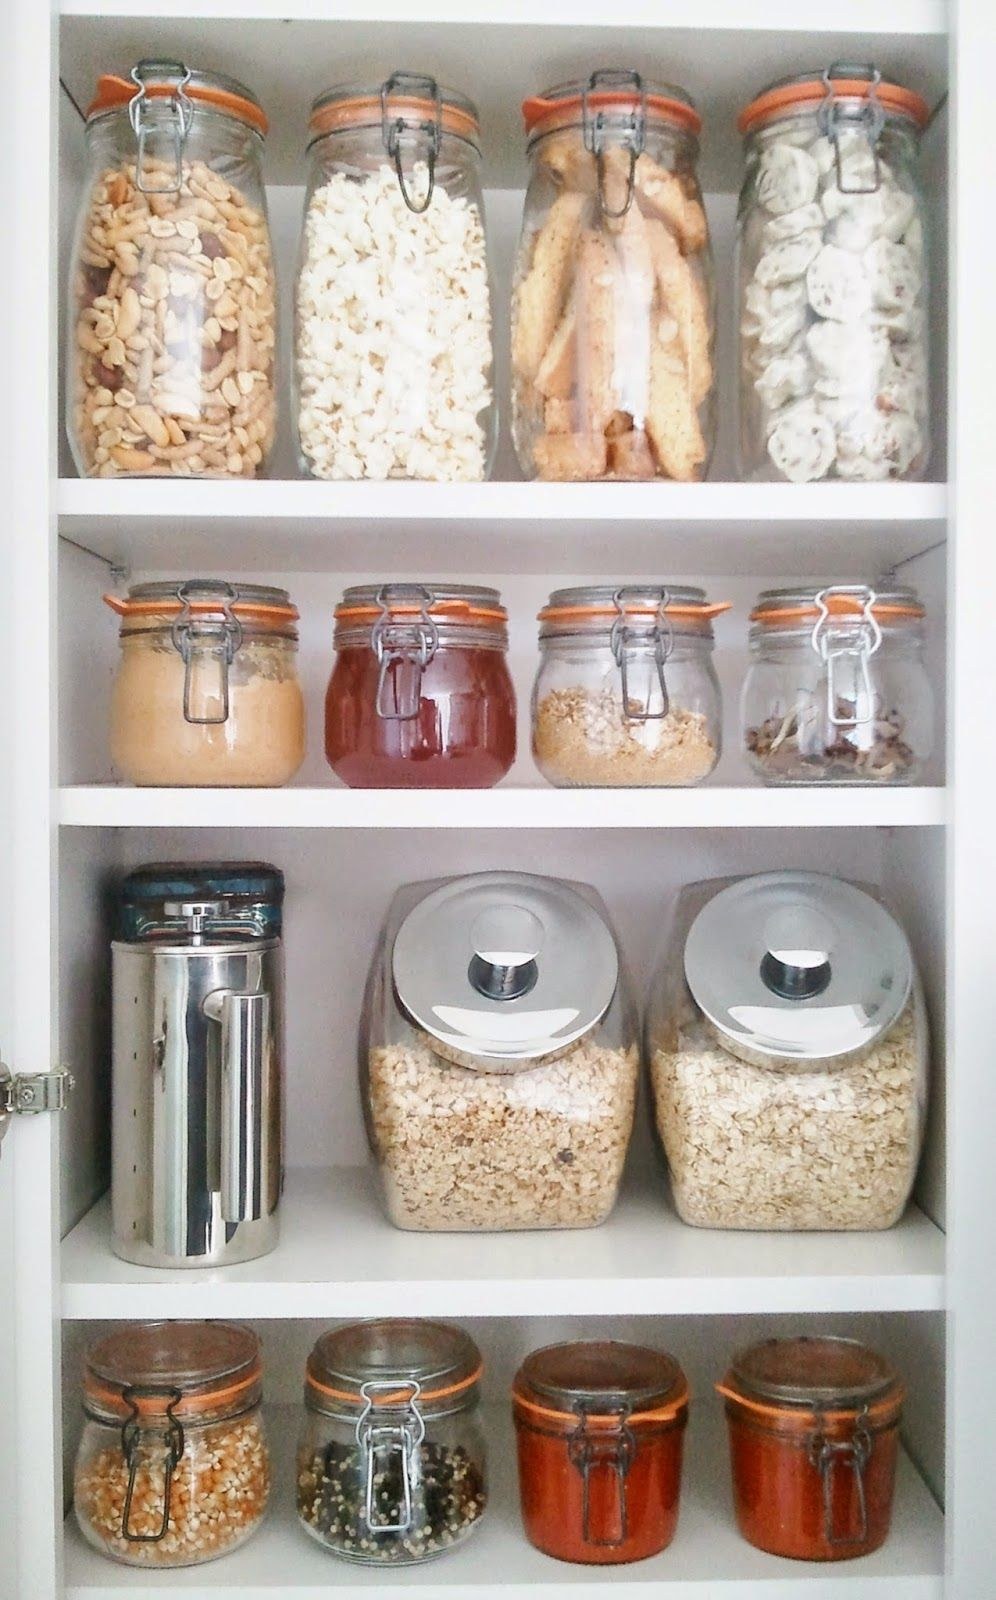 Zero Waste Home: Tips - many ideas for reducing trash ...